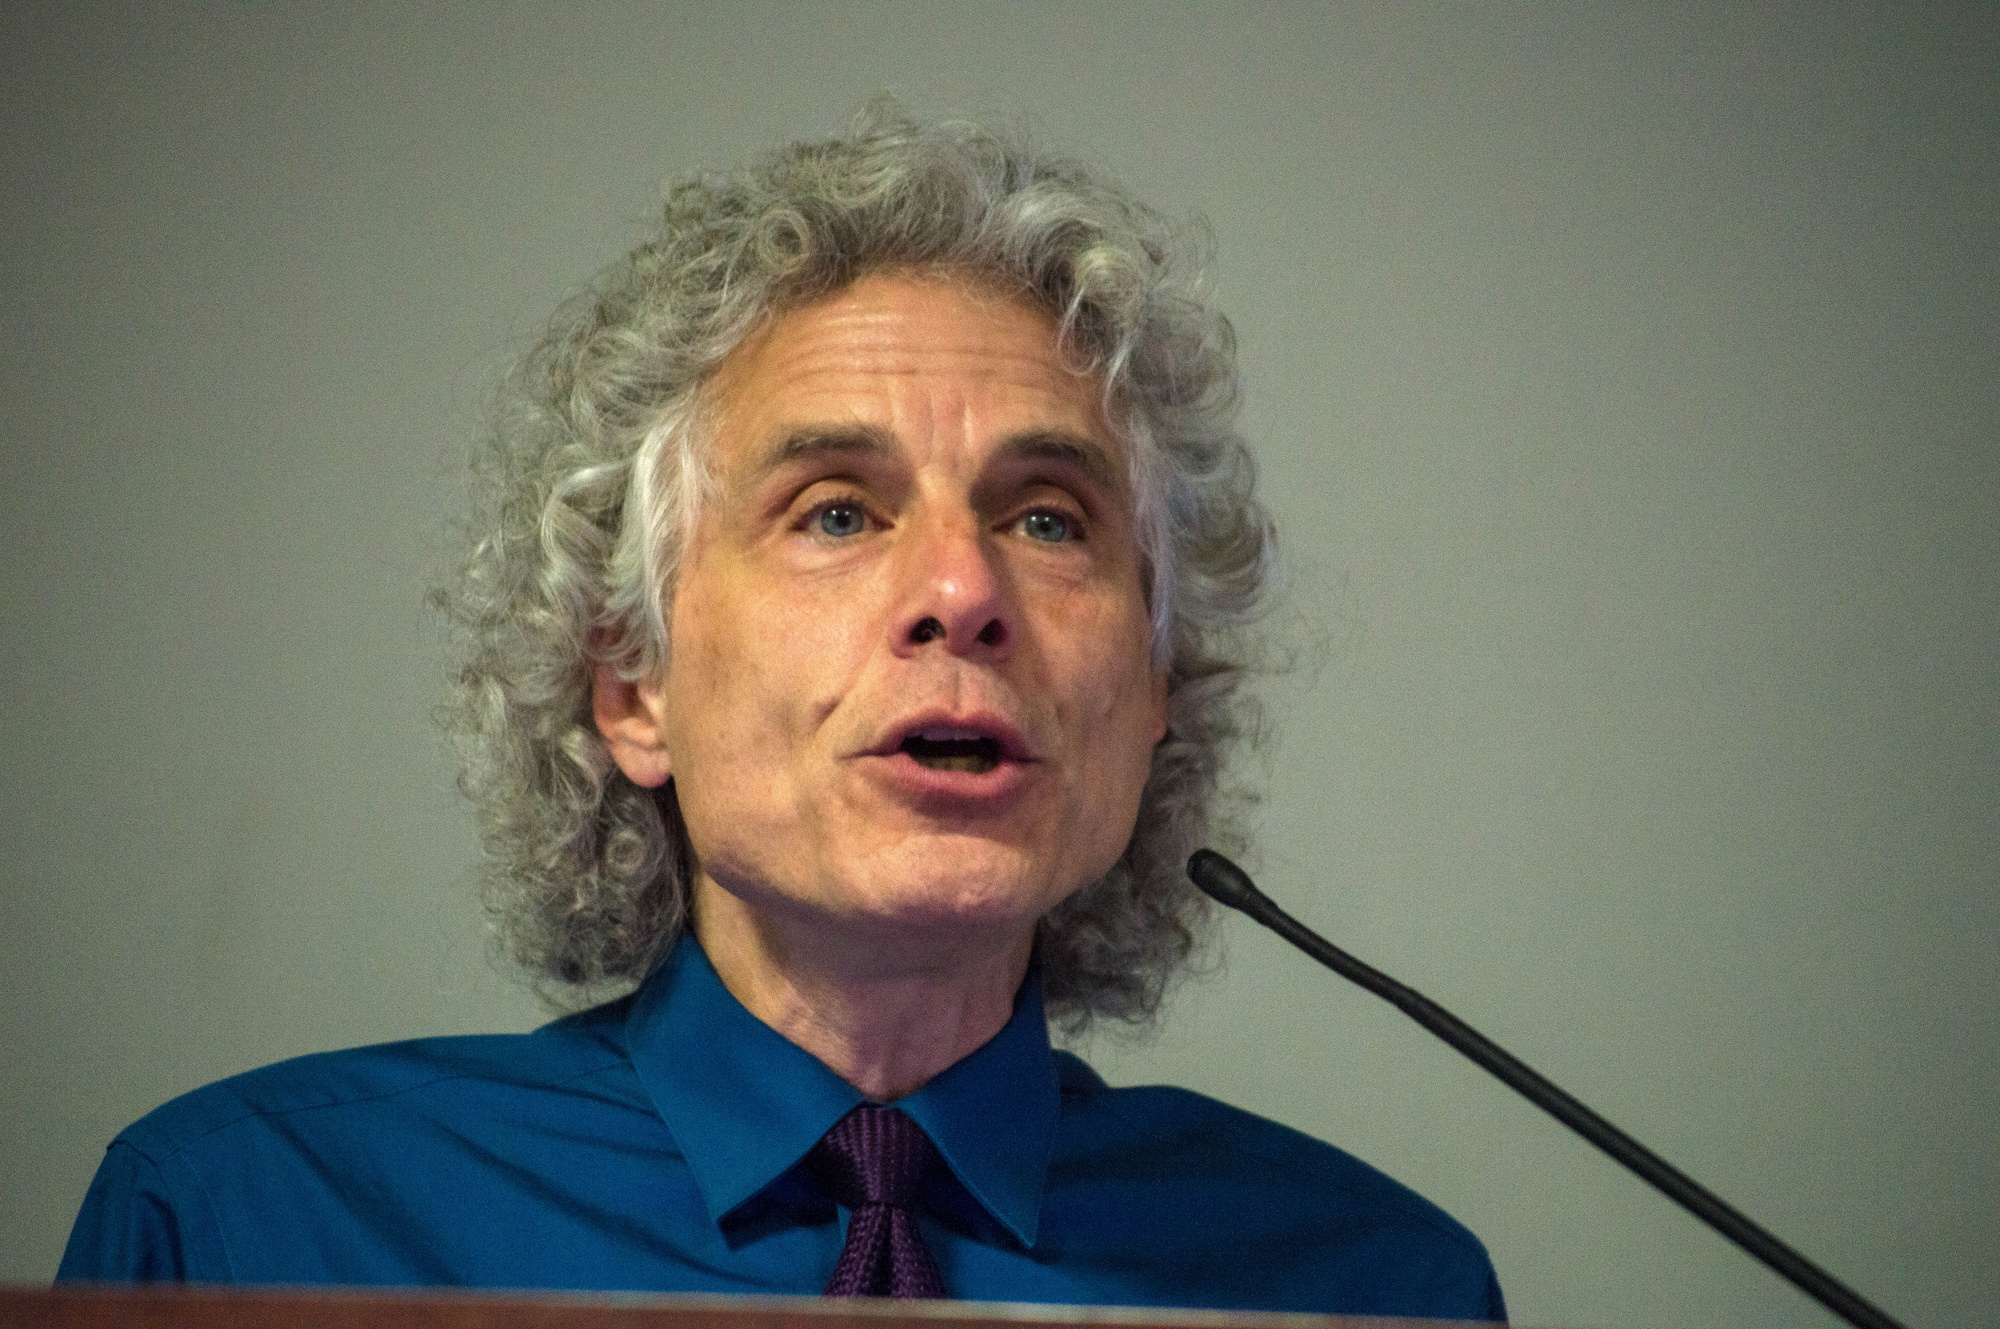 Psychology professor Steven A. Pinker discussed the long-term decline in violence in a presentation hosted by Harvard College Effective Altruism on Thursday. Making multiple references to his 2011 book The Better Angels of Our Nature, Pinker argued for a relatively optimistic view of the future.